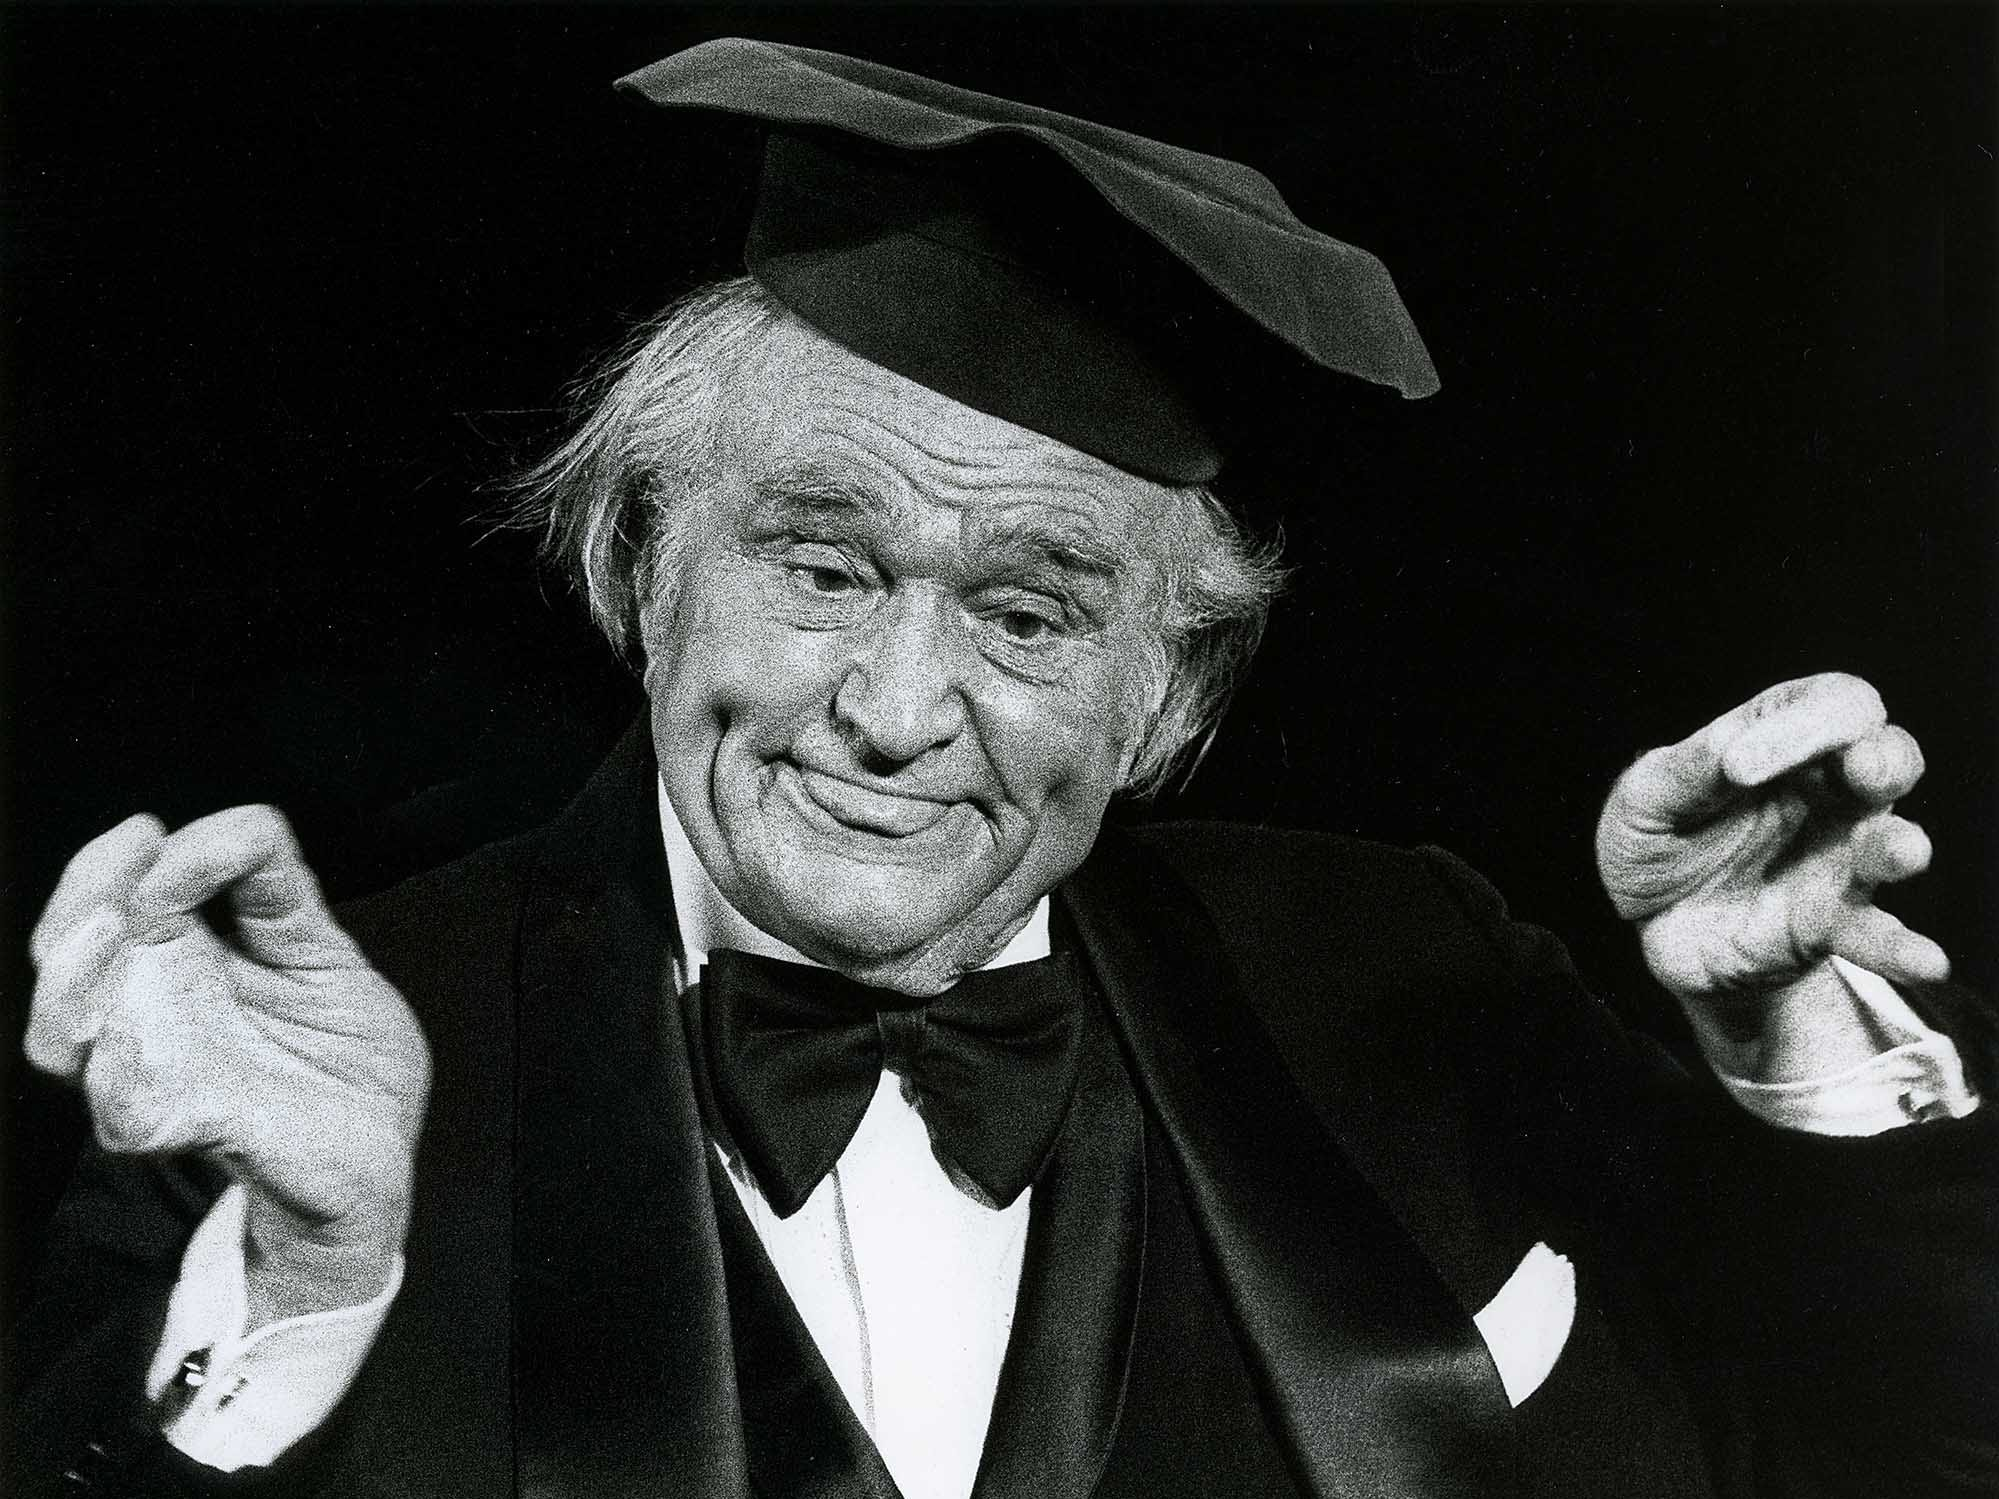 Red Skelton during a performance as Little Boy at the Fishing Pond during the 1982World's Fair in Knoxville.